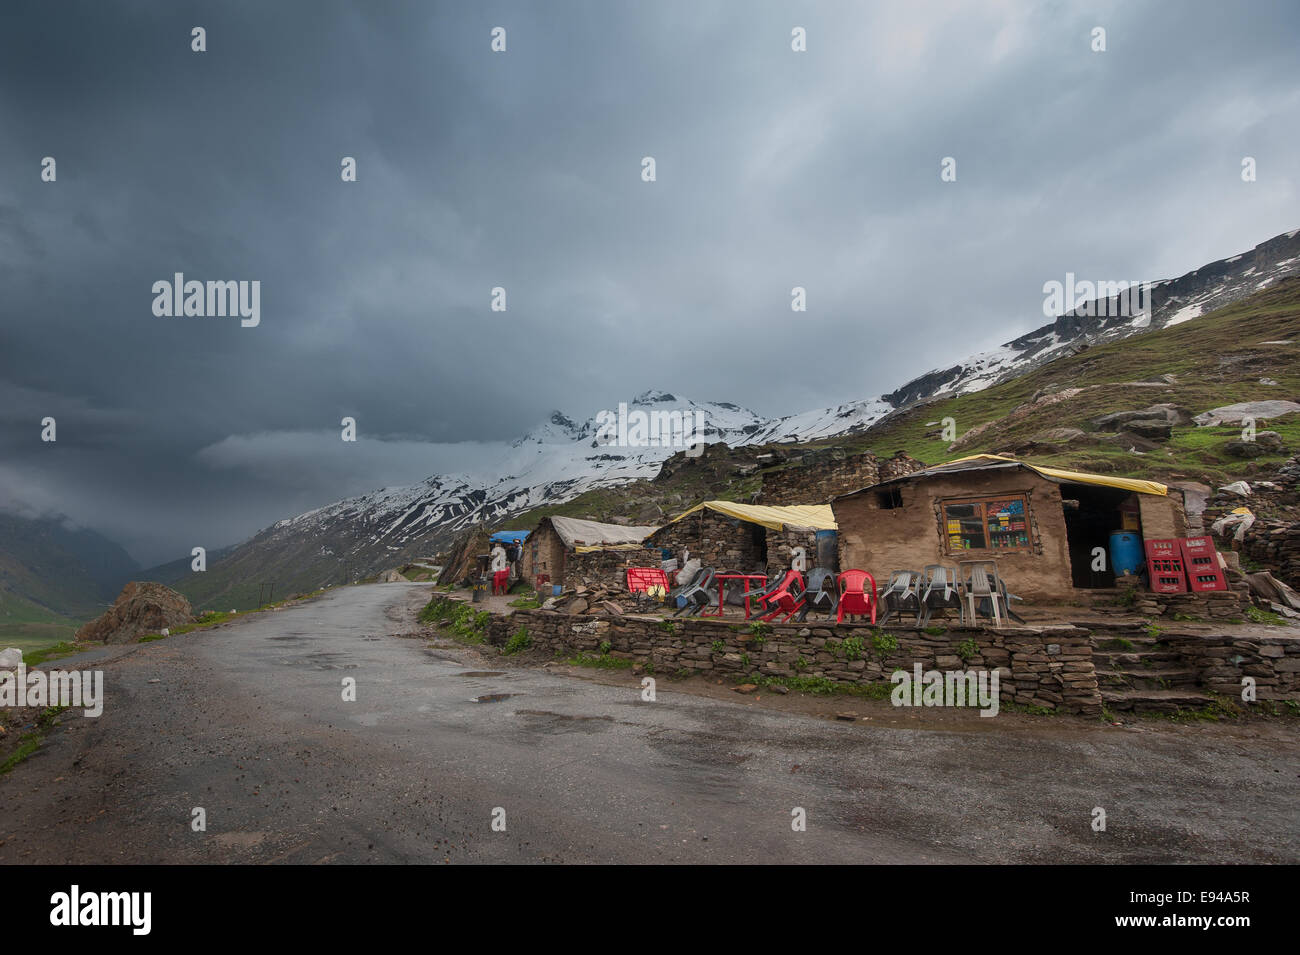 Dhaba a road side eatery place on the way to Keylong Himachal Pradesh, India - Stock Image